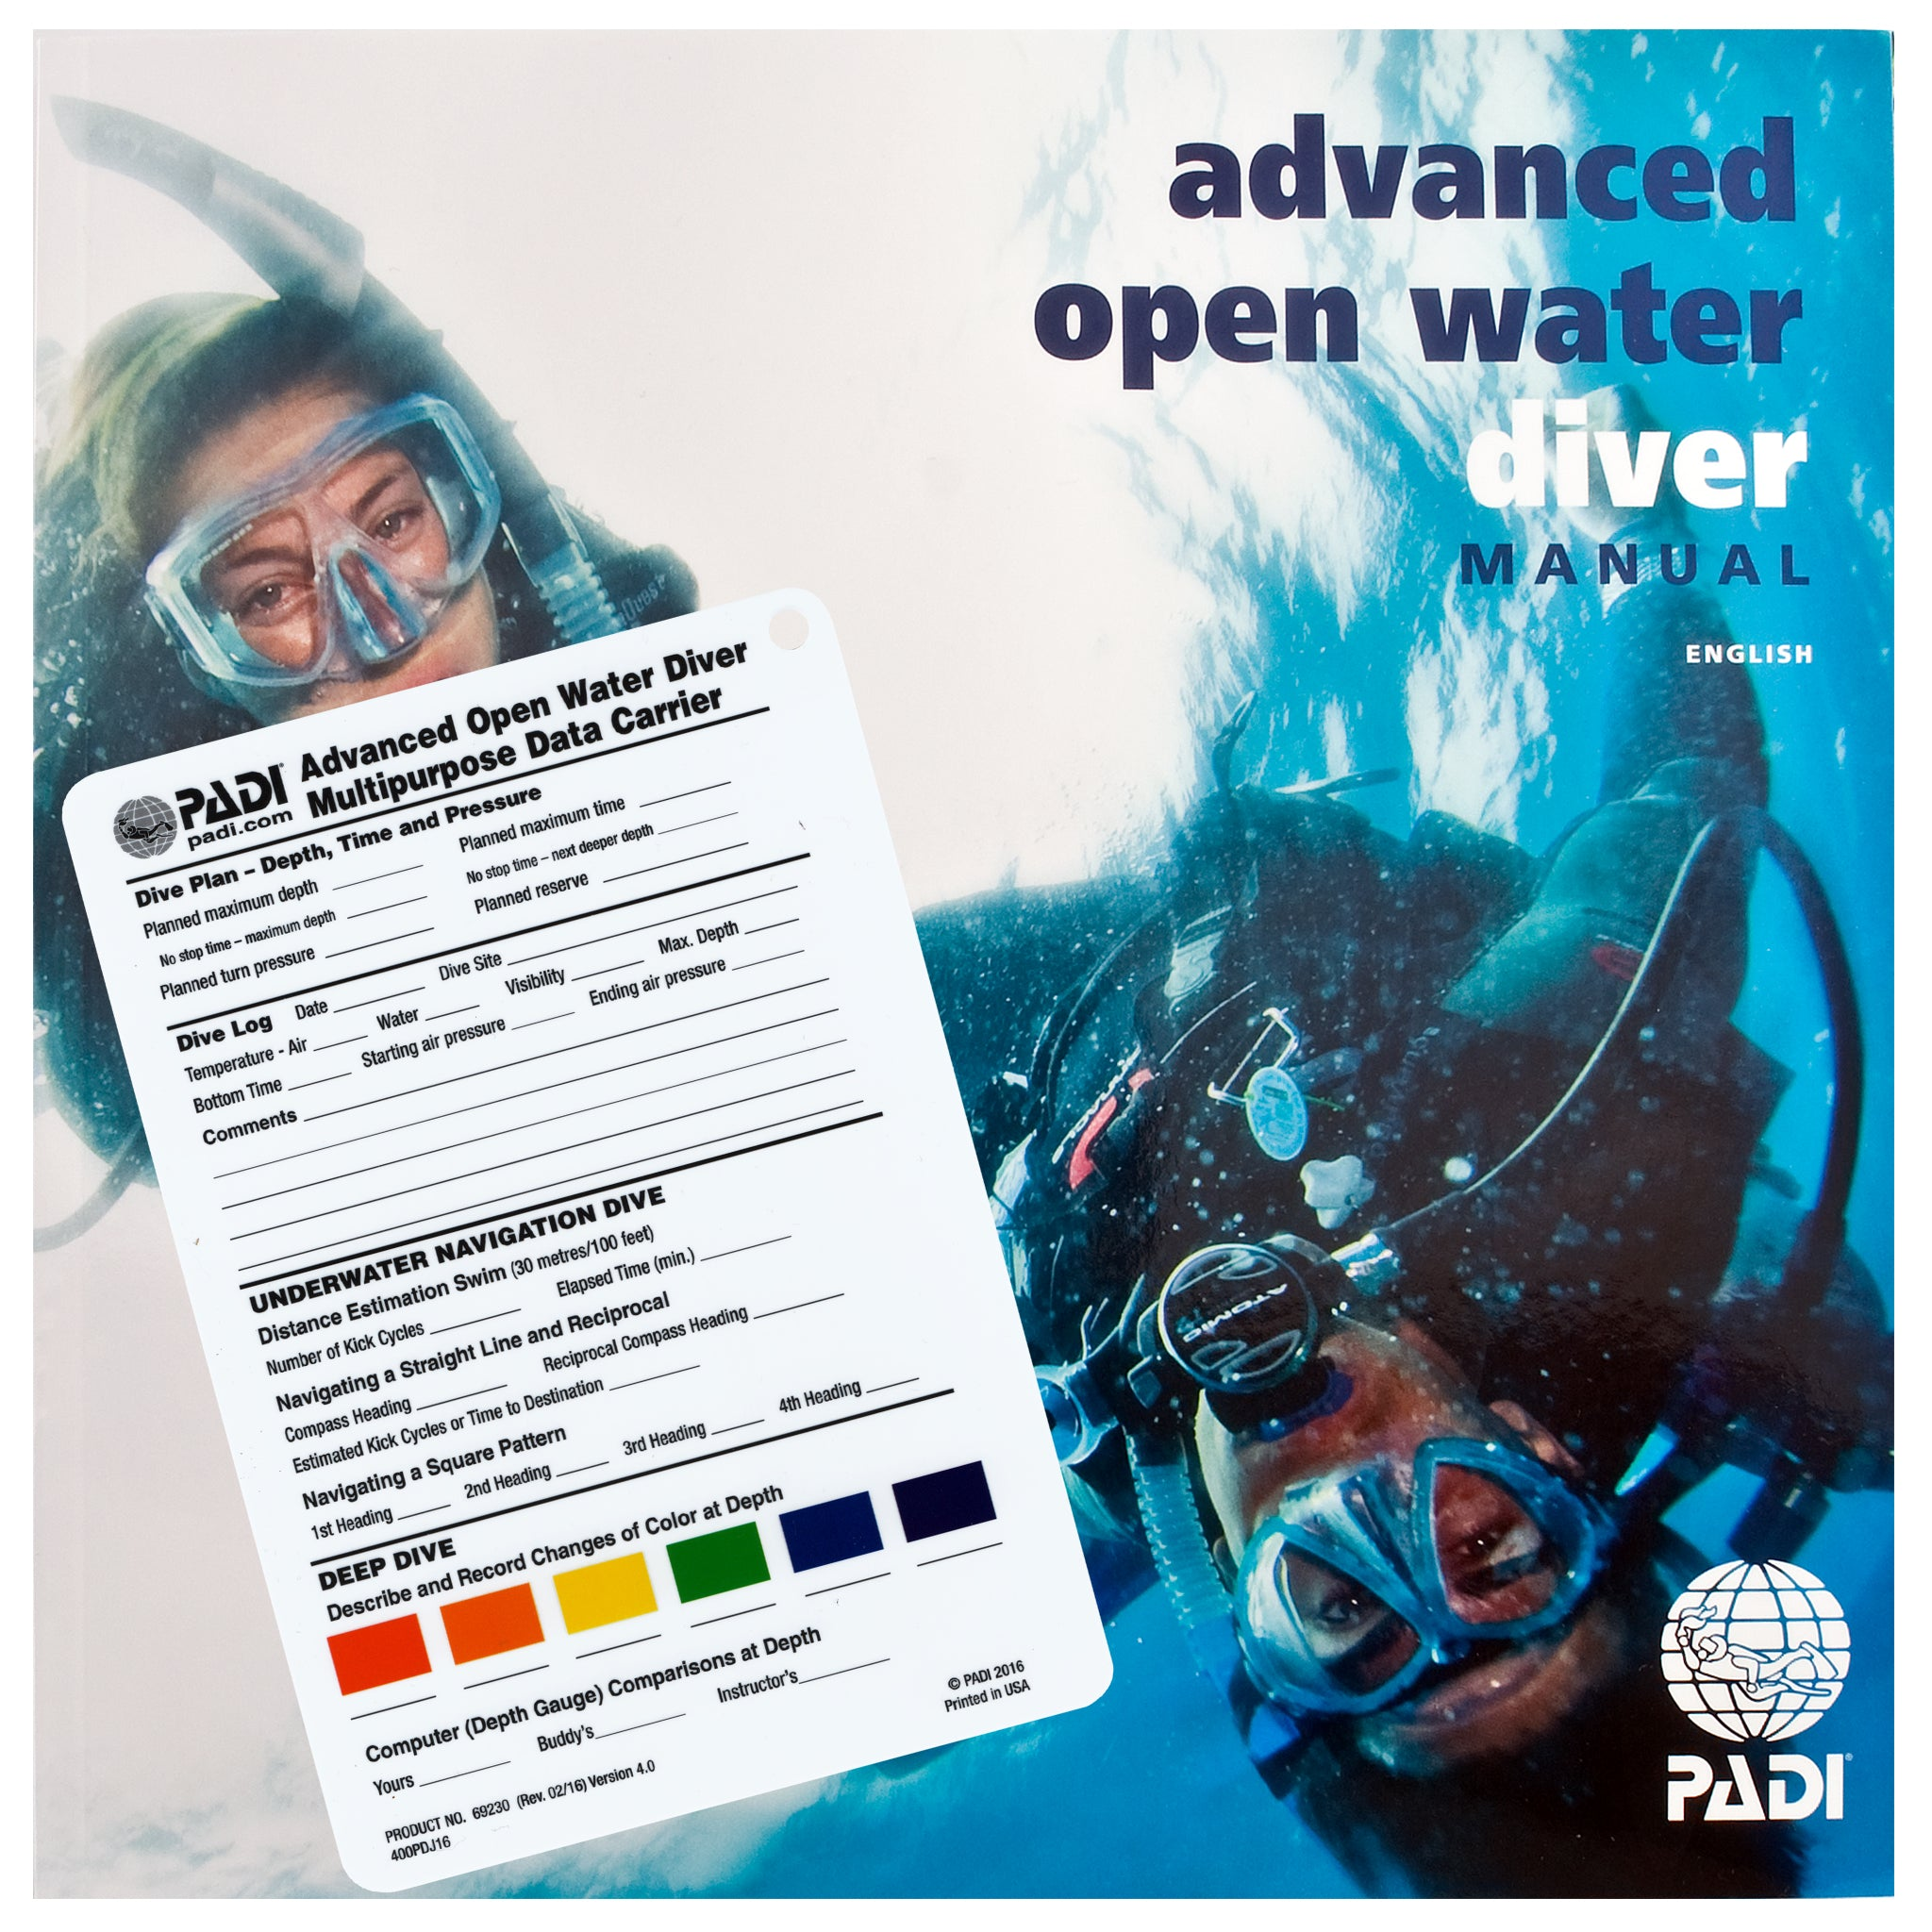 PADI Adventures in Diving Course Manual & Data Carrier ...